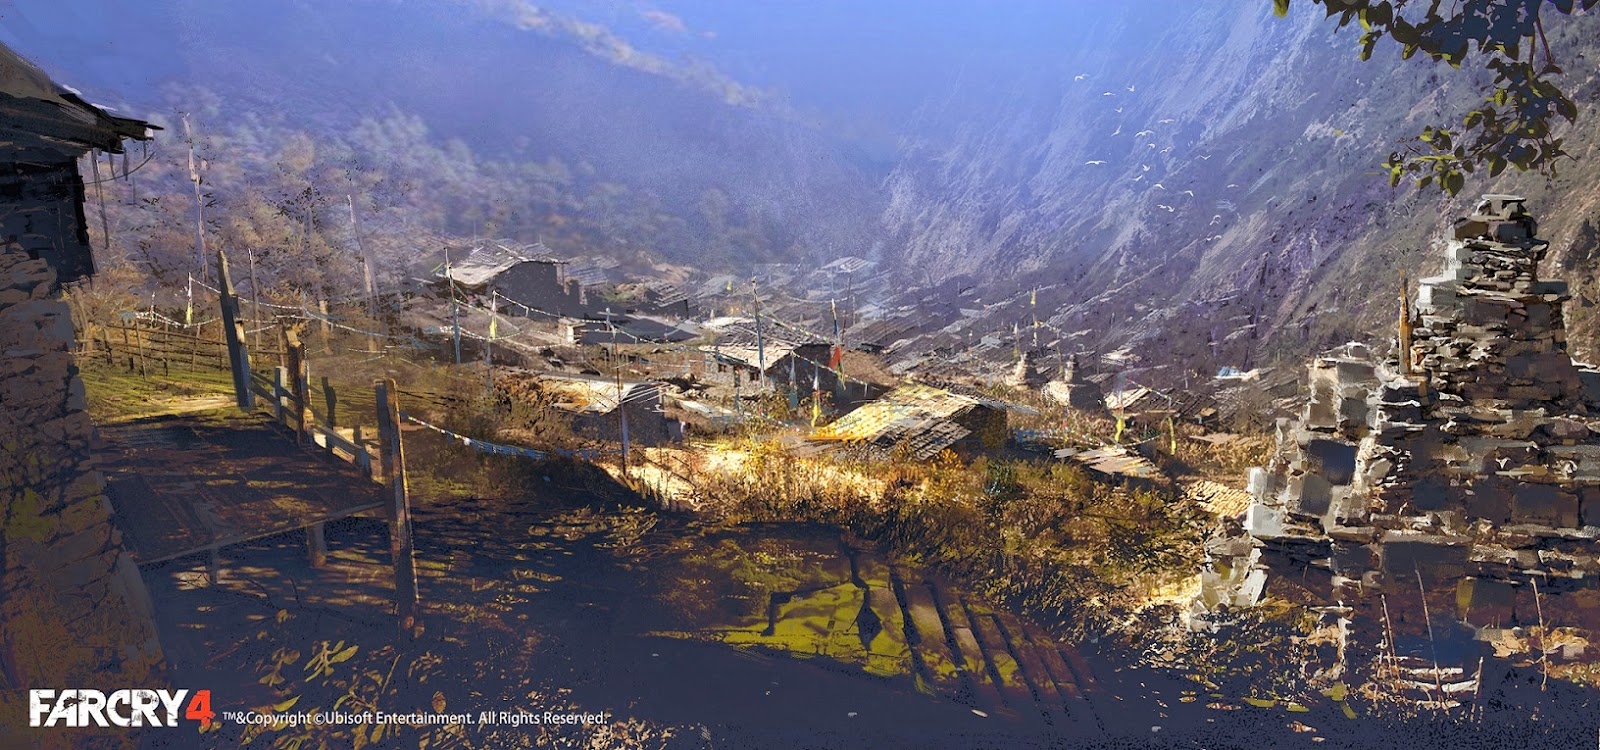 far cry 4 concept art 11